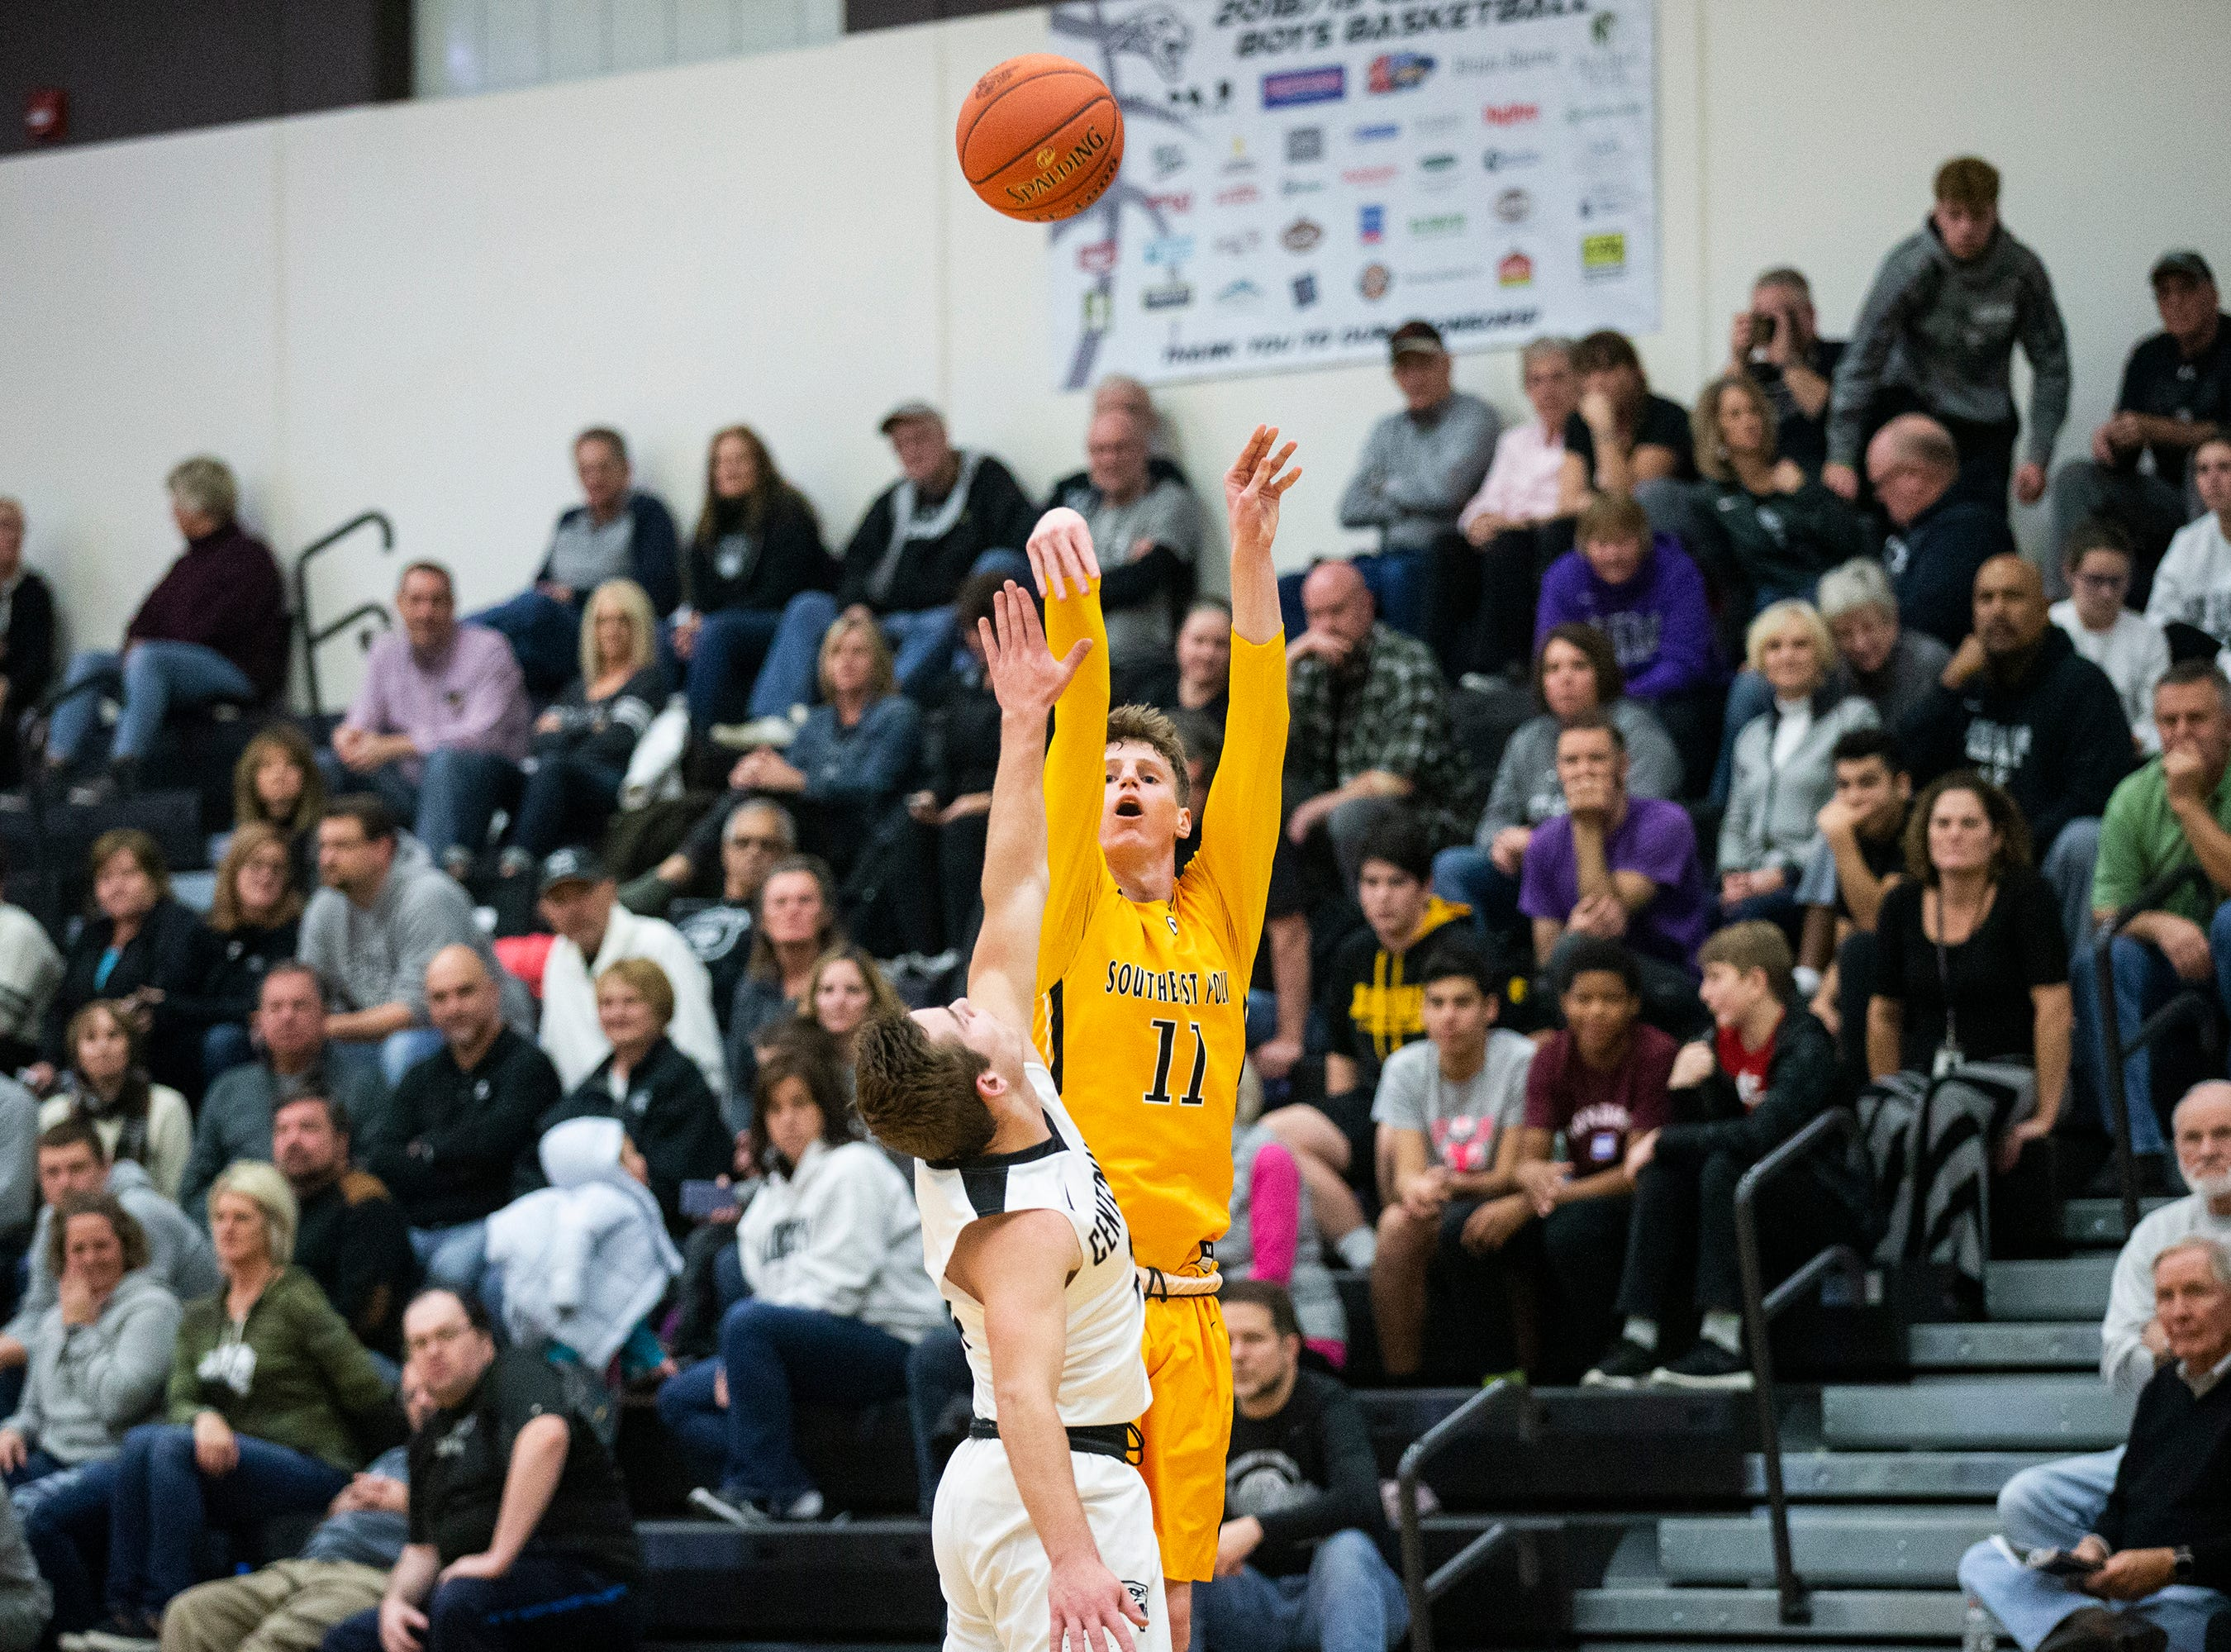 SEP's Sam Glenn shoots the ball during the Southeast Polk vs. Ankeny Centennial boy's basketball game on Tuesday, Nov. 27, 2018, at Ankeny Centennial High School.